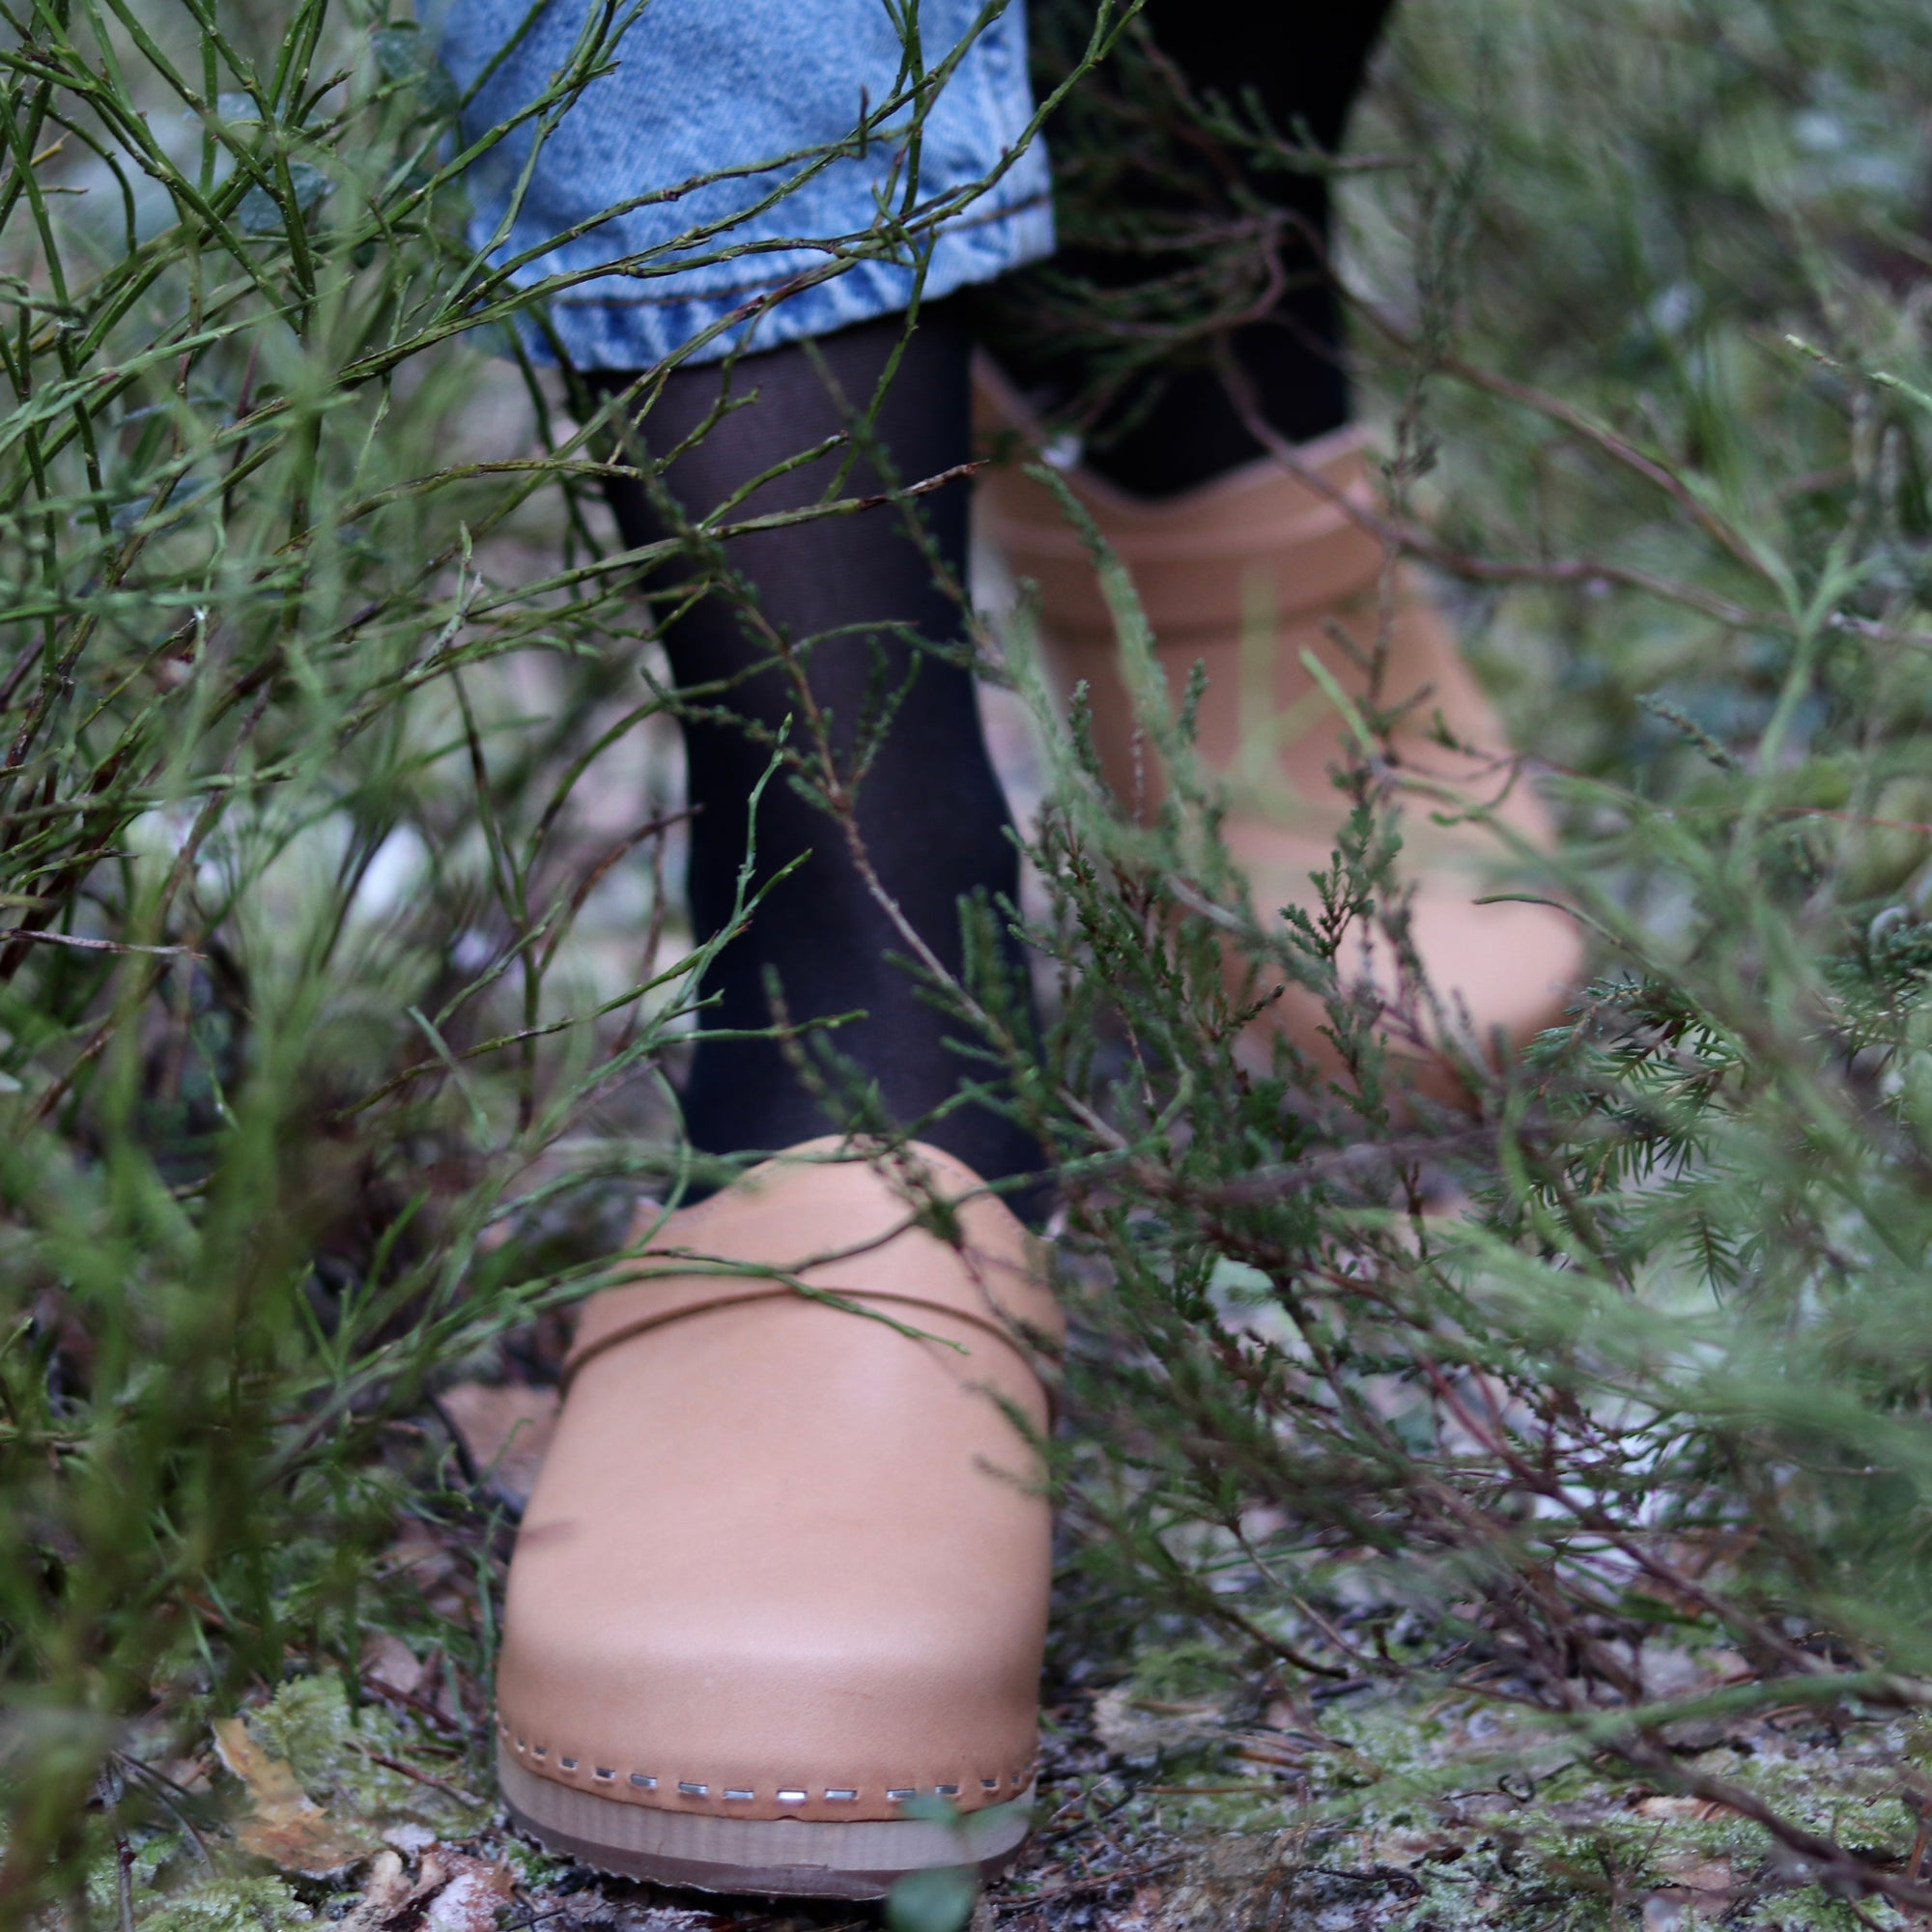 A person walking through the long grass with tan clogs